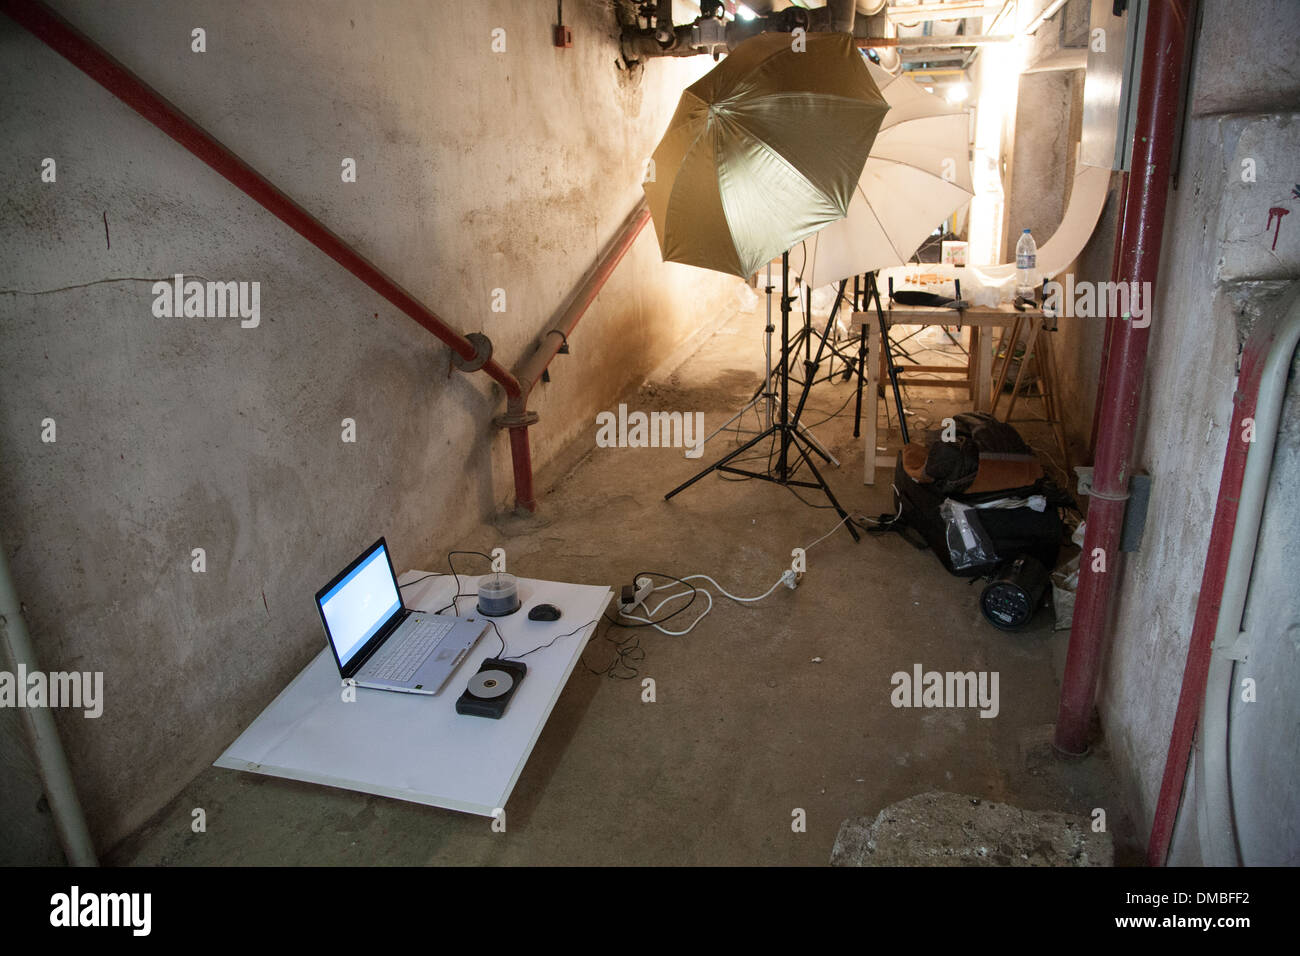 photoshoot laptop still life table umbrella flash commercial shooting studio items products catalog photography download images - Stock Image